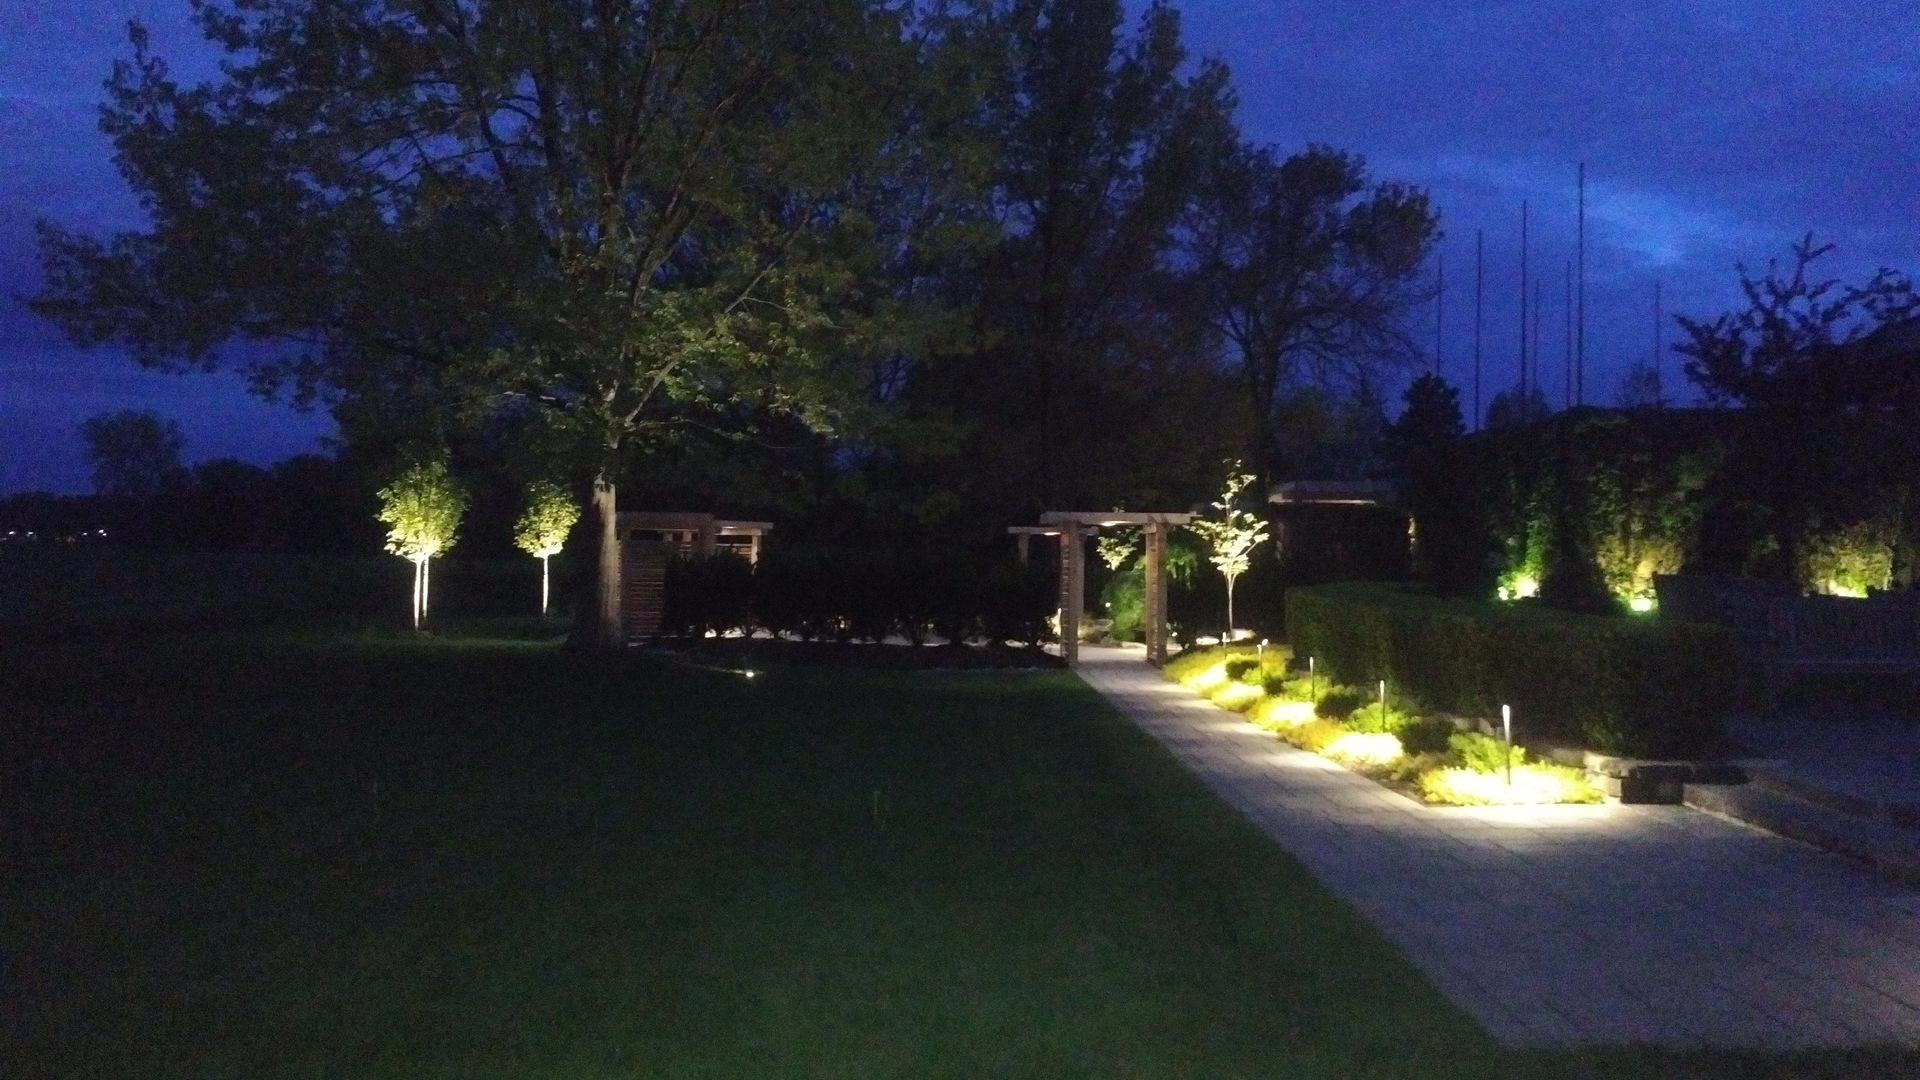 Led Landscape Lighting Main Category Tree Amigos Landscaping Inc Design Build Property Maintenance In St Catharines Ontario